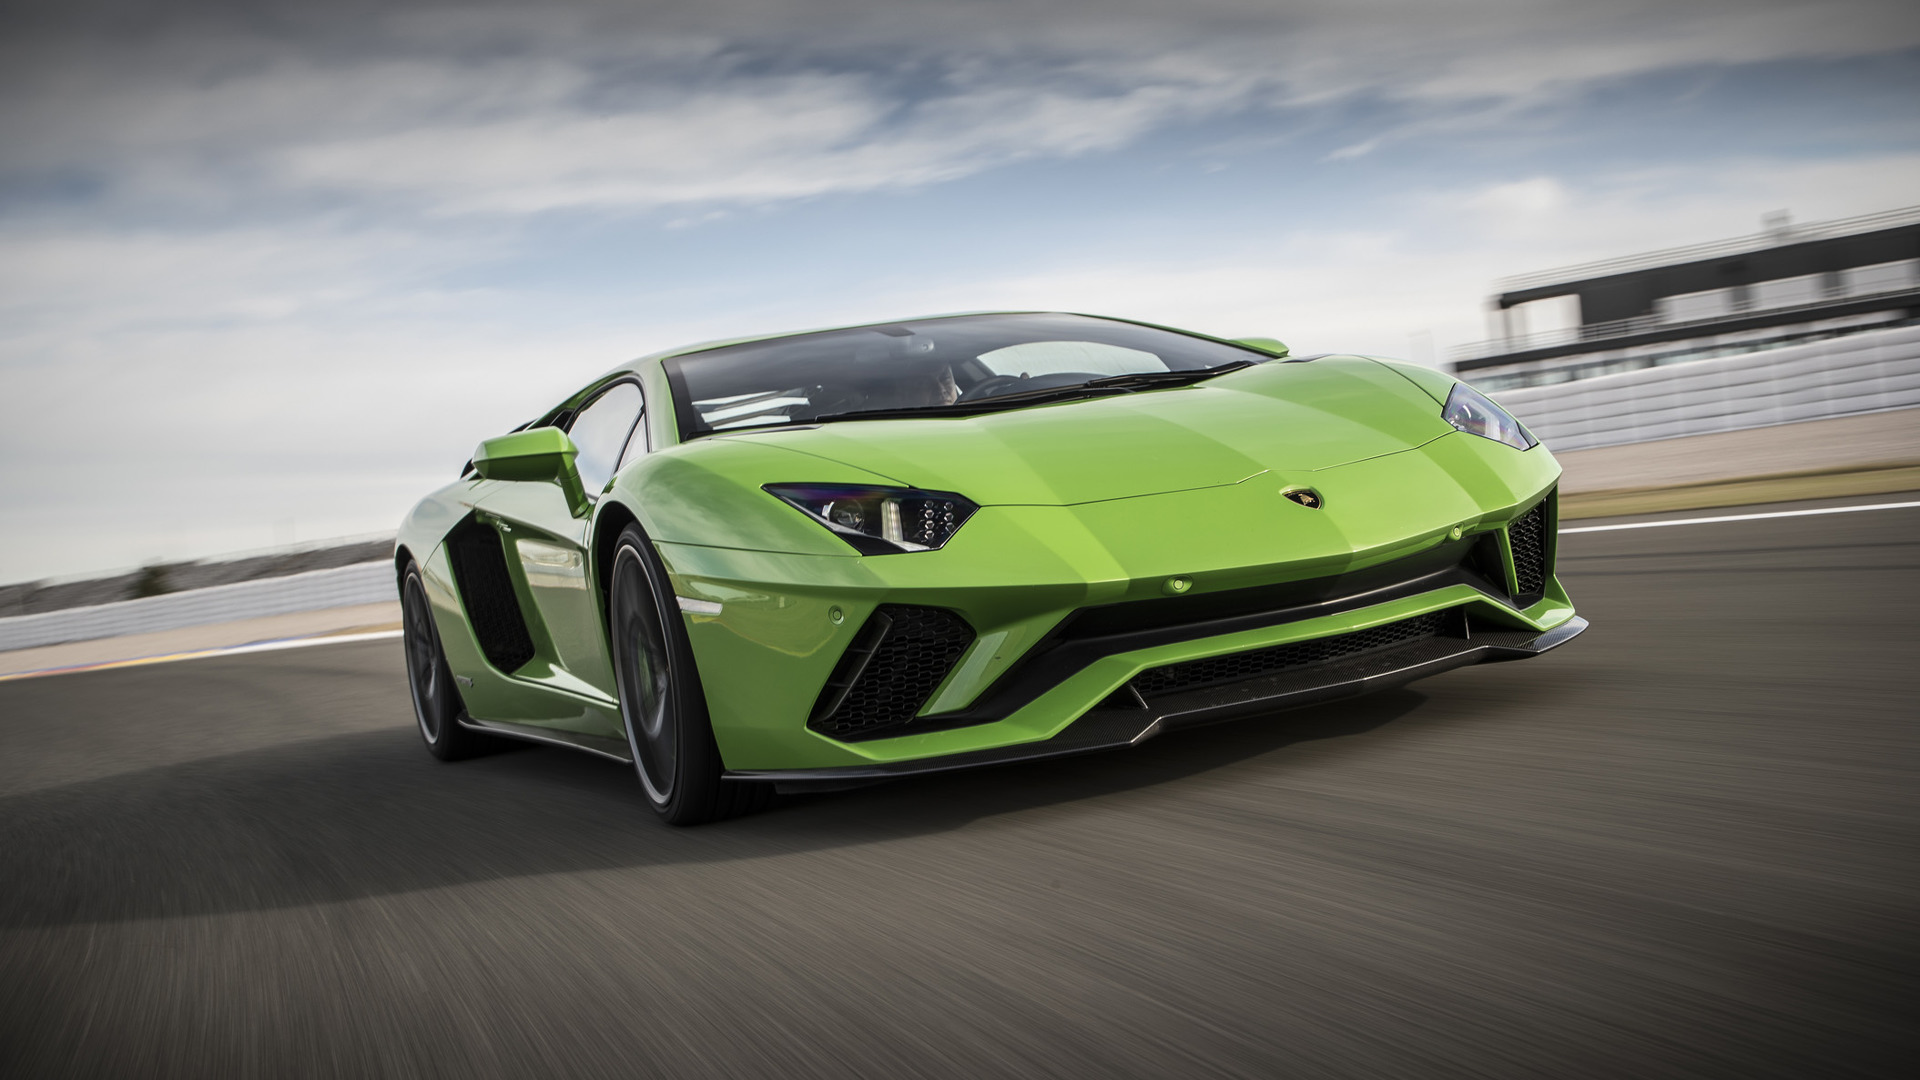 All In One Super Cars Wallpapers Lamborghini Aventador S Coupe News And Reviews Motor1 Com